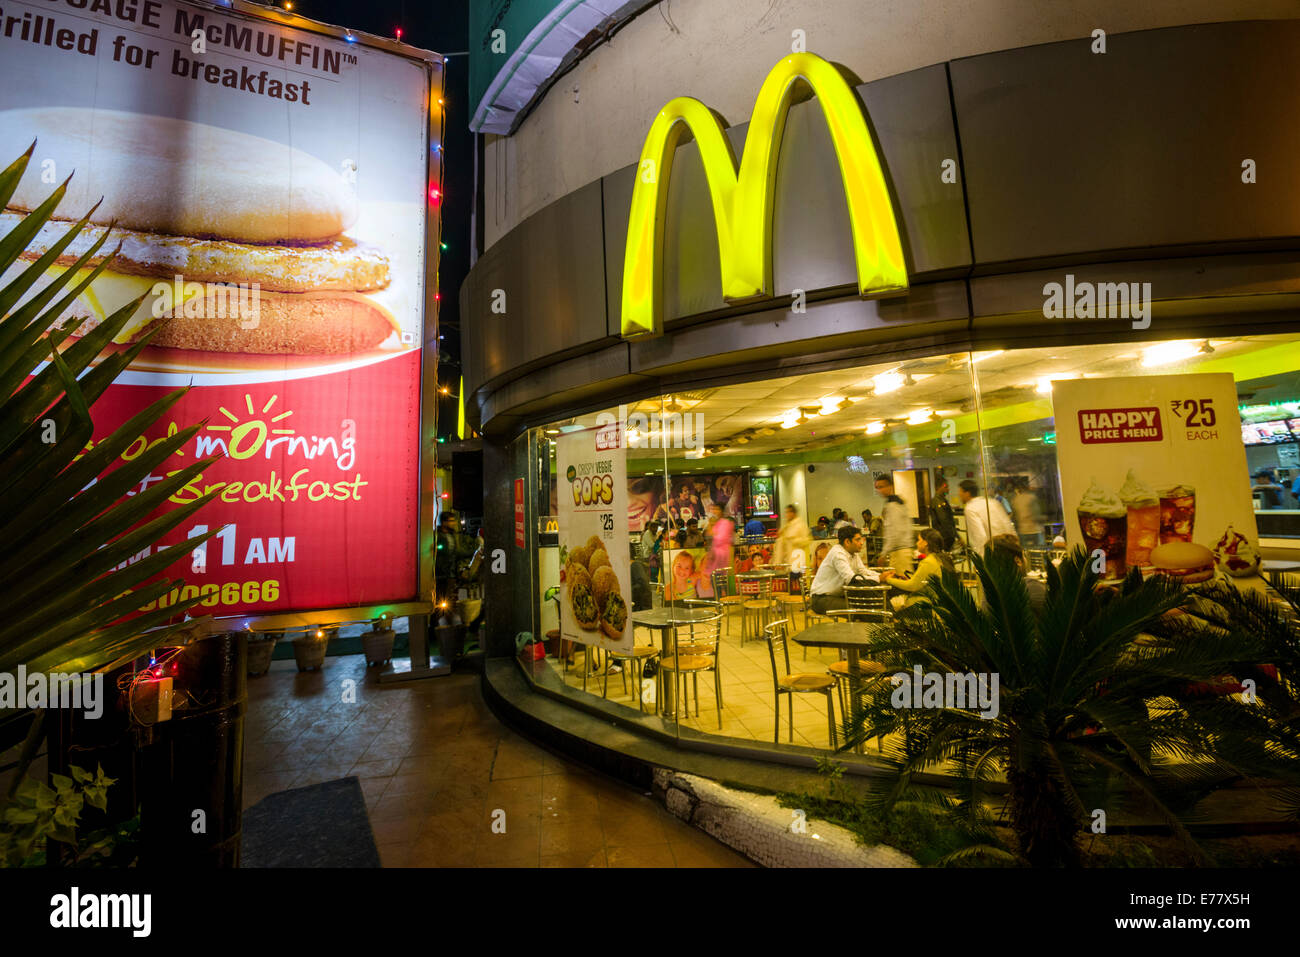 McDonald's restaurant, Ahmedabad, Gujarat, India - Stock Image